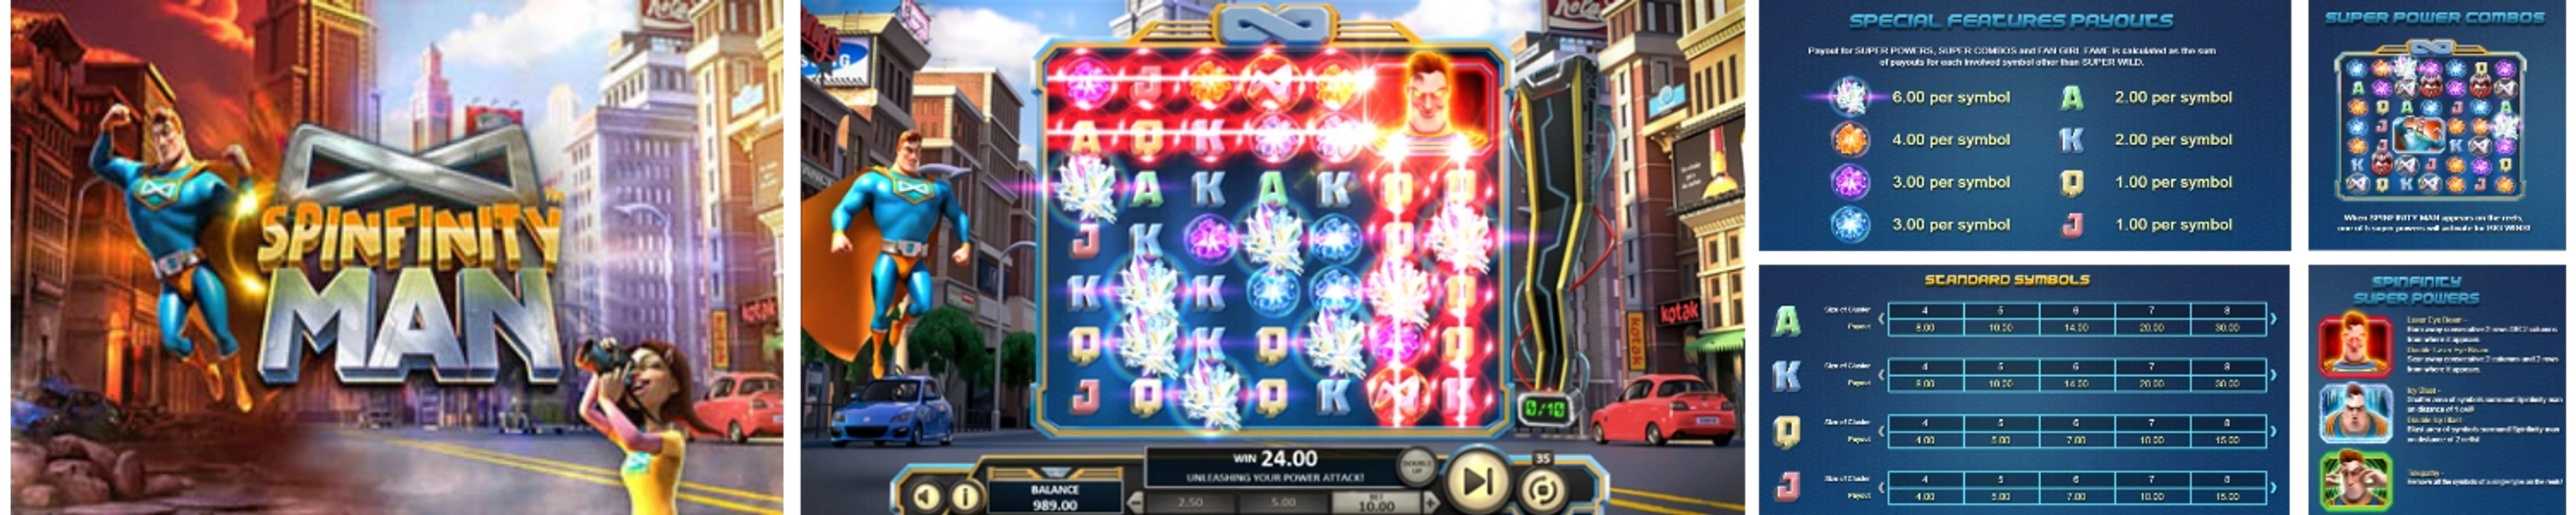 Spinfinity Man Online Video Slot Review